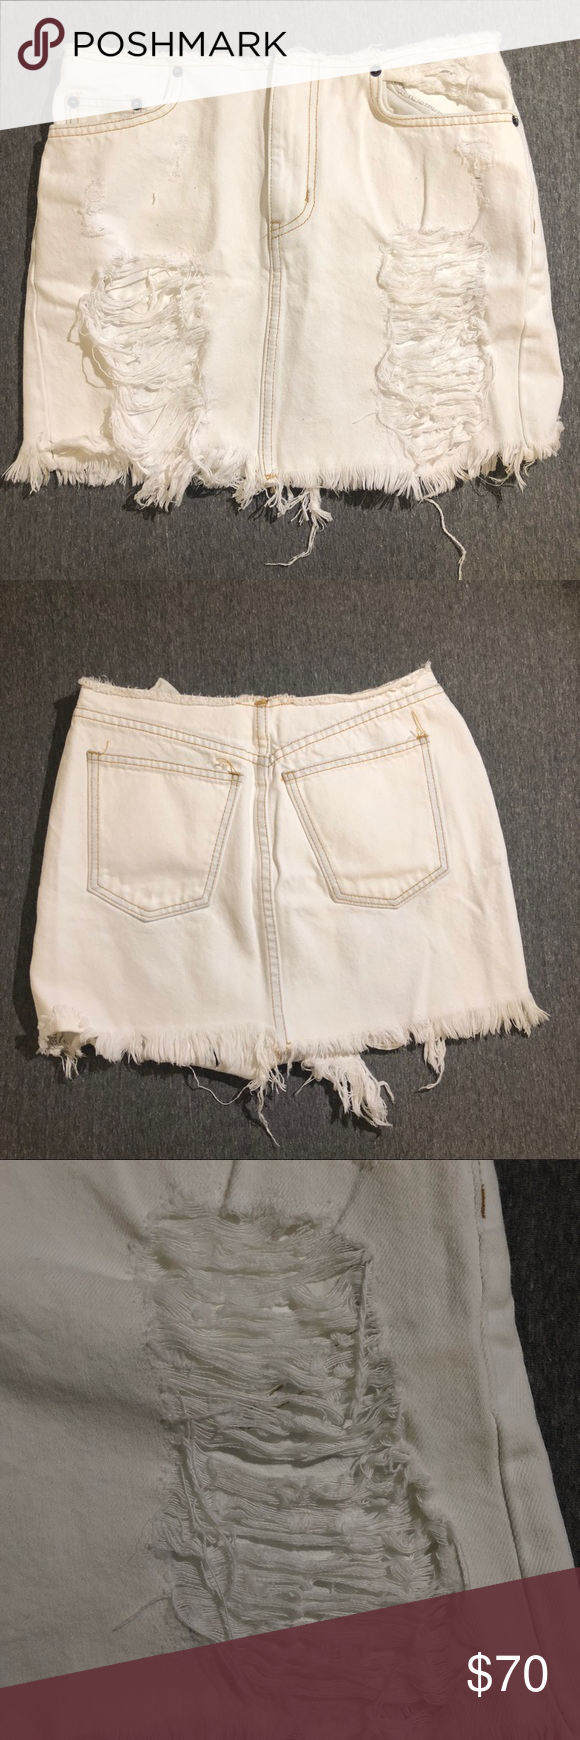 91673c8a5a Carmar White Denim Skirt White distressed denim skirt from LF. Size 26.  Never worn, tag still attached. LF Skirts Mini